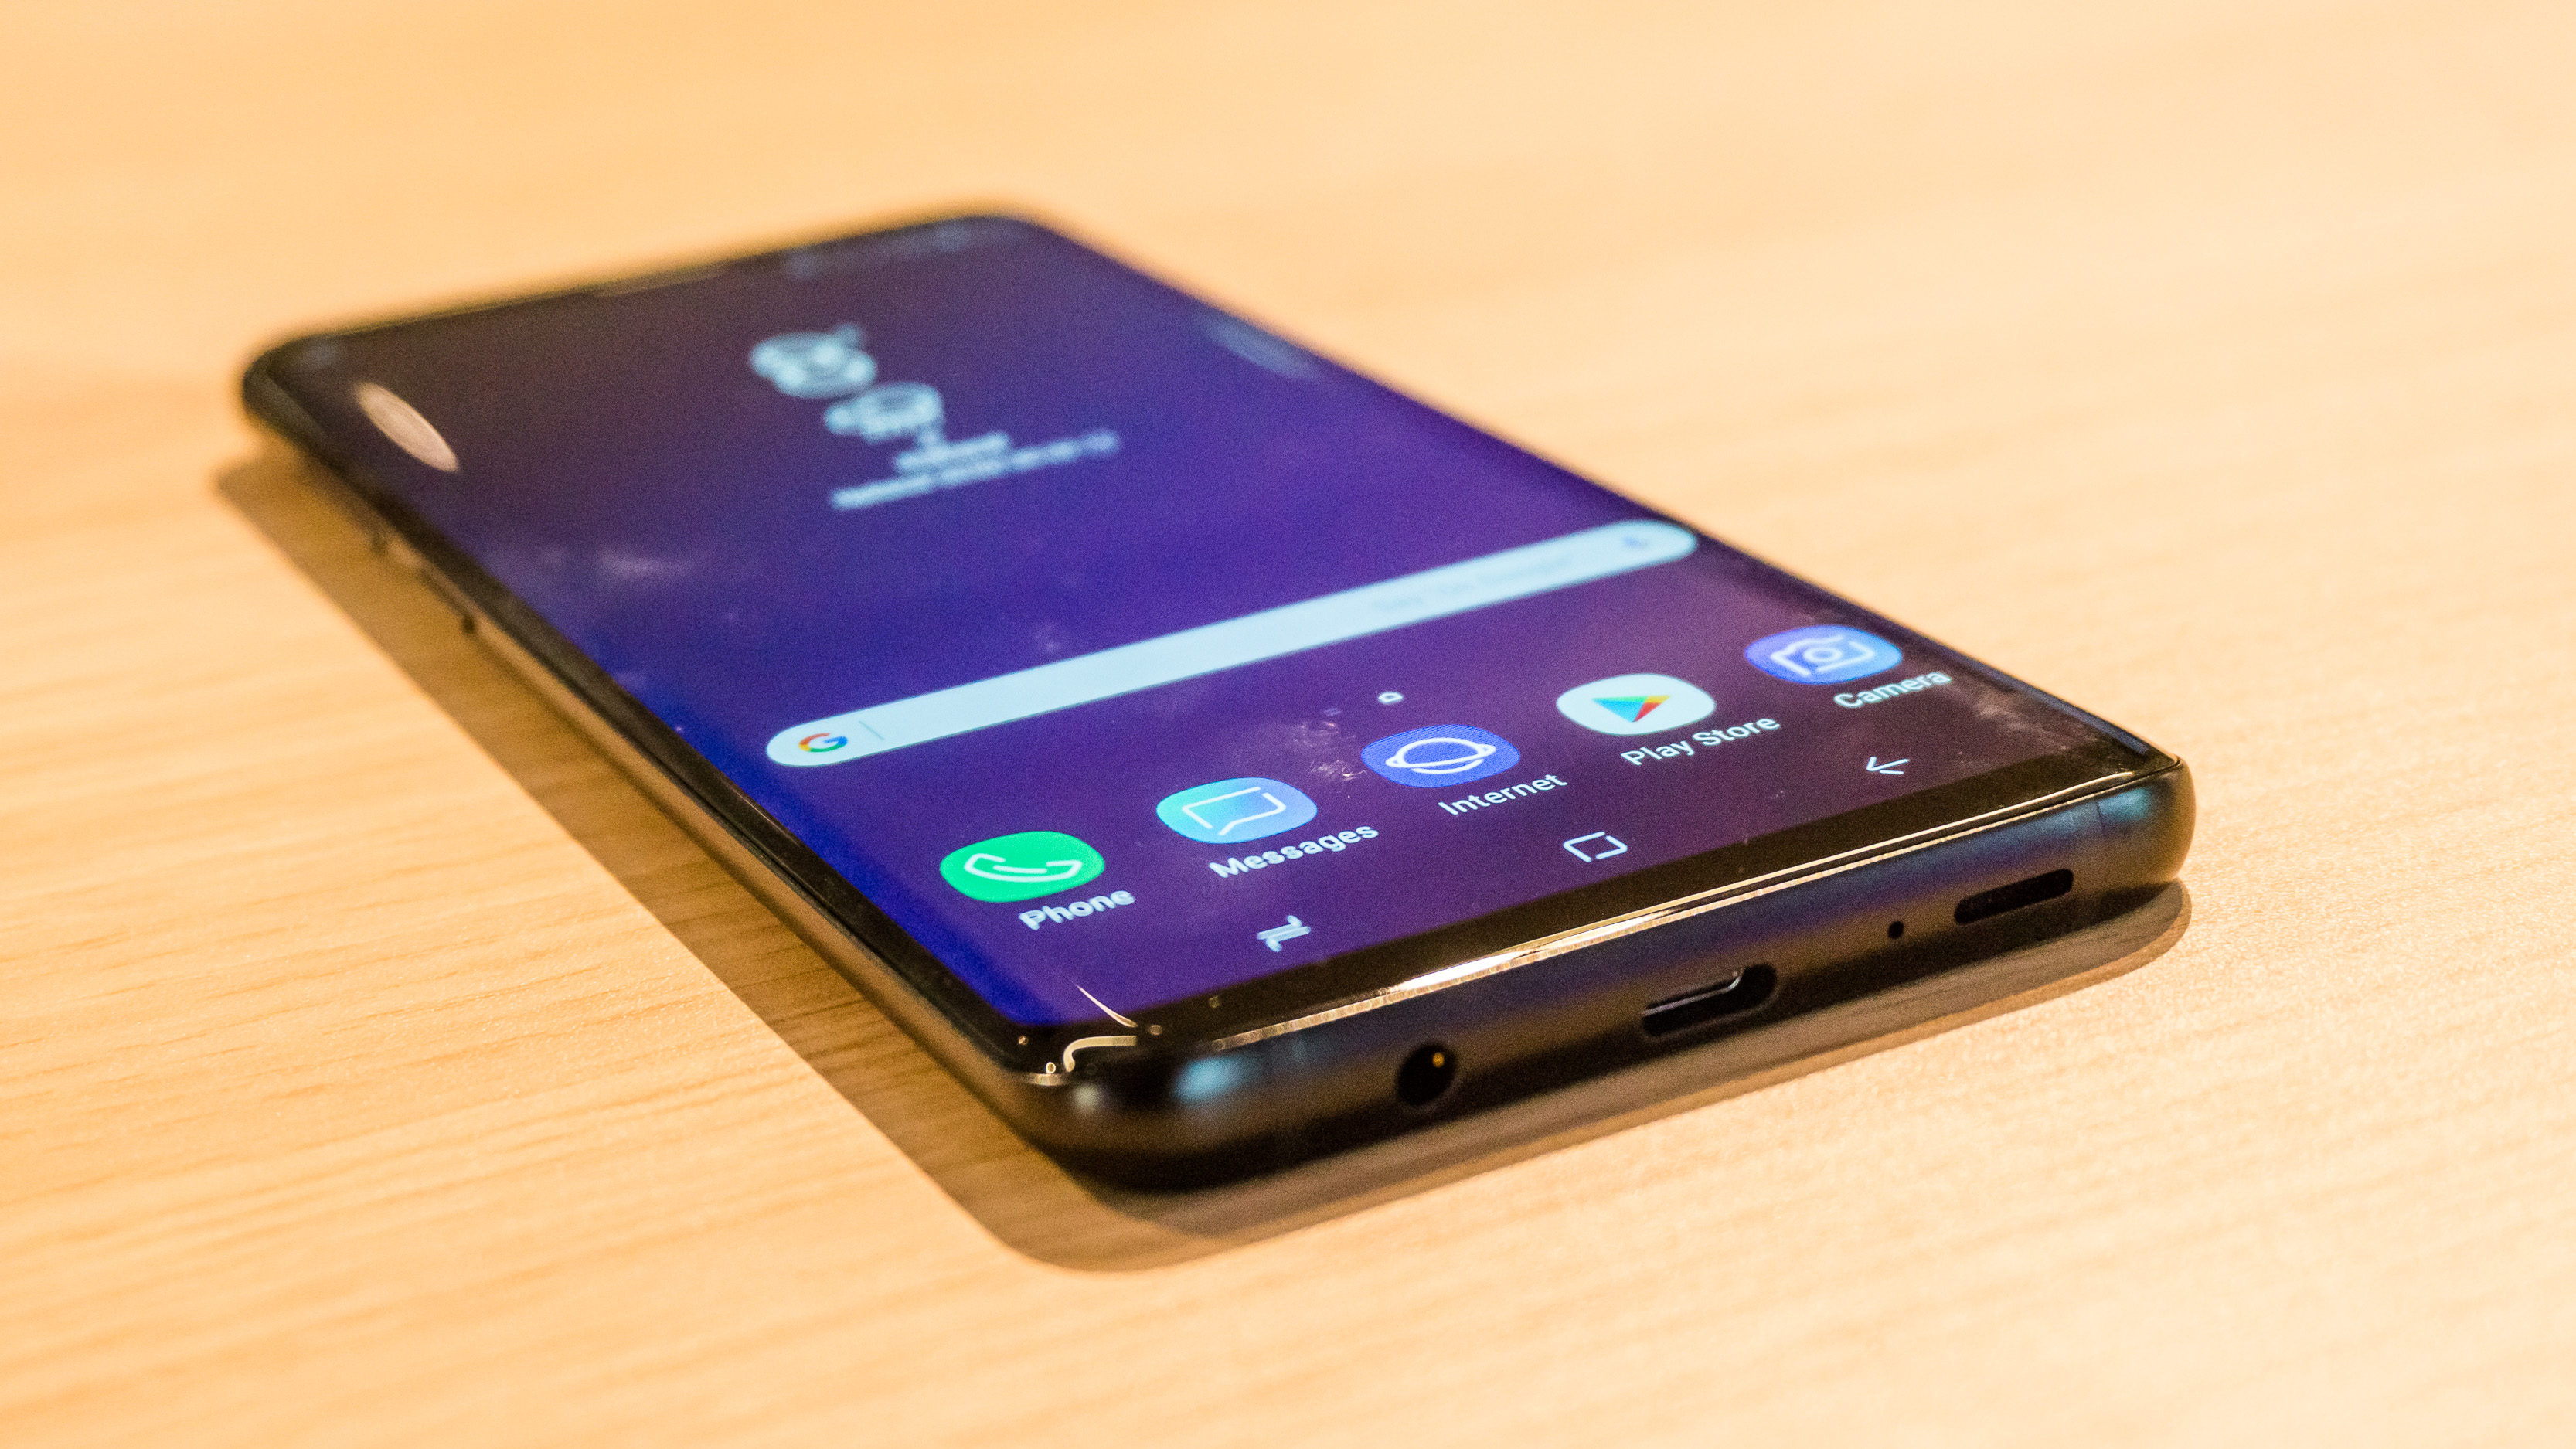 Kabelloses Laden Handy Samsung Galaxy S9 Plus Wireless Charging Alle Infos Zum Aufladen